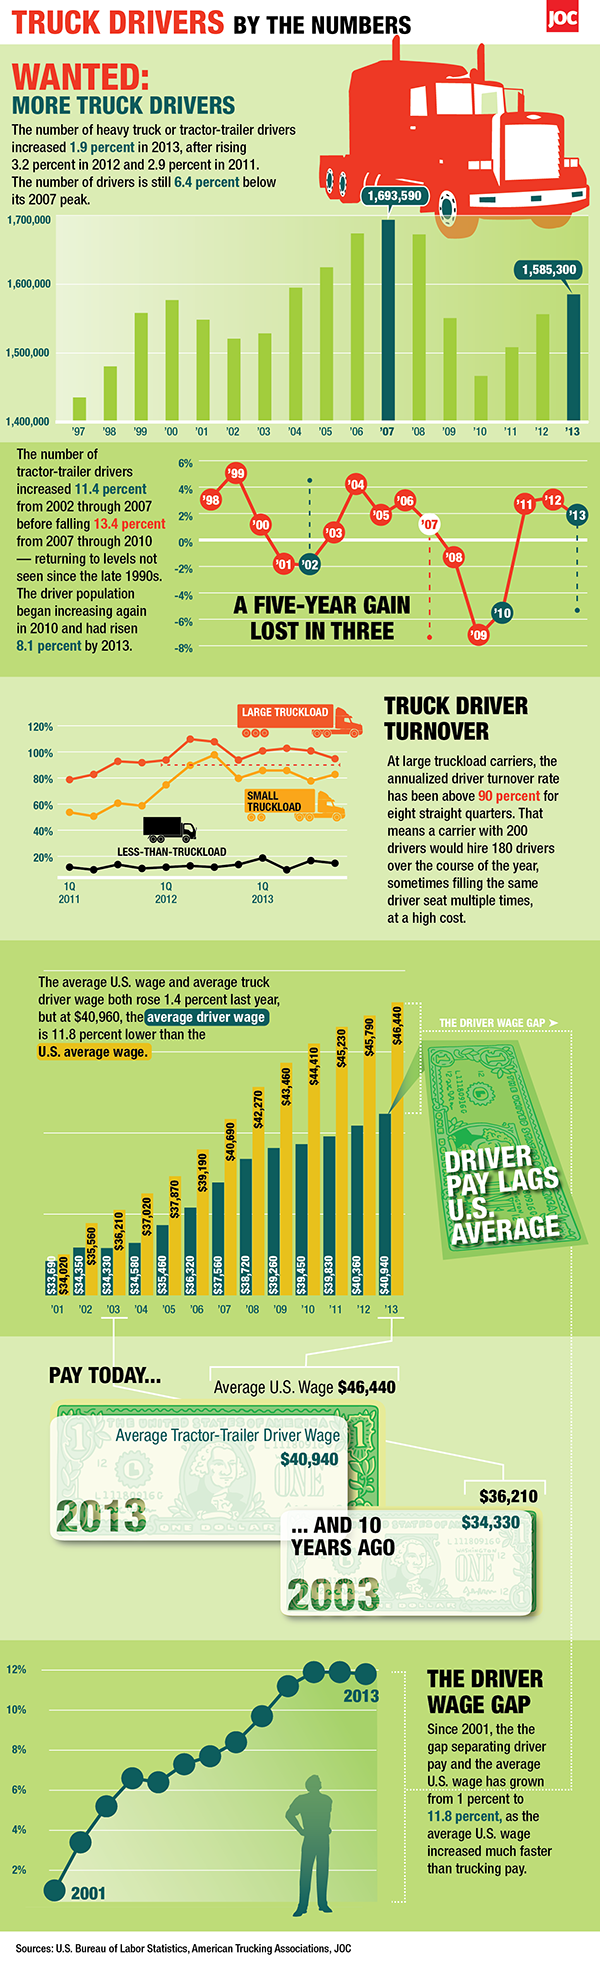 Truck Drivers by the Numbers 2013